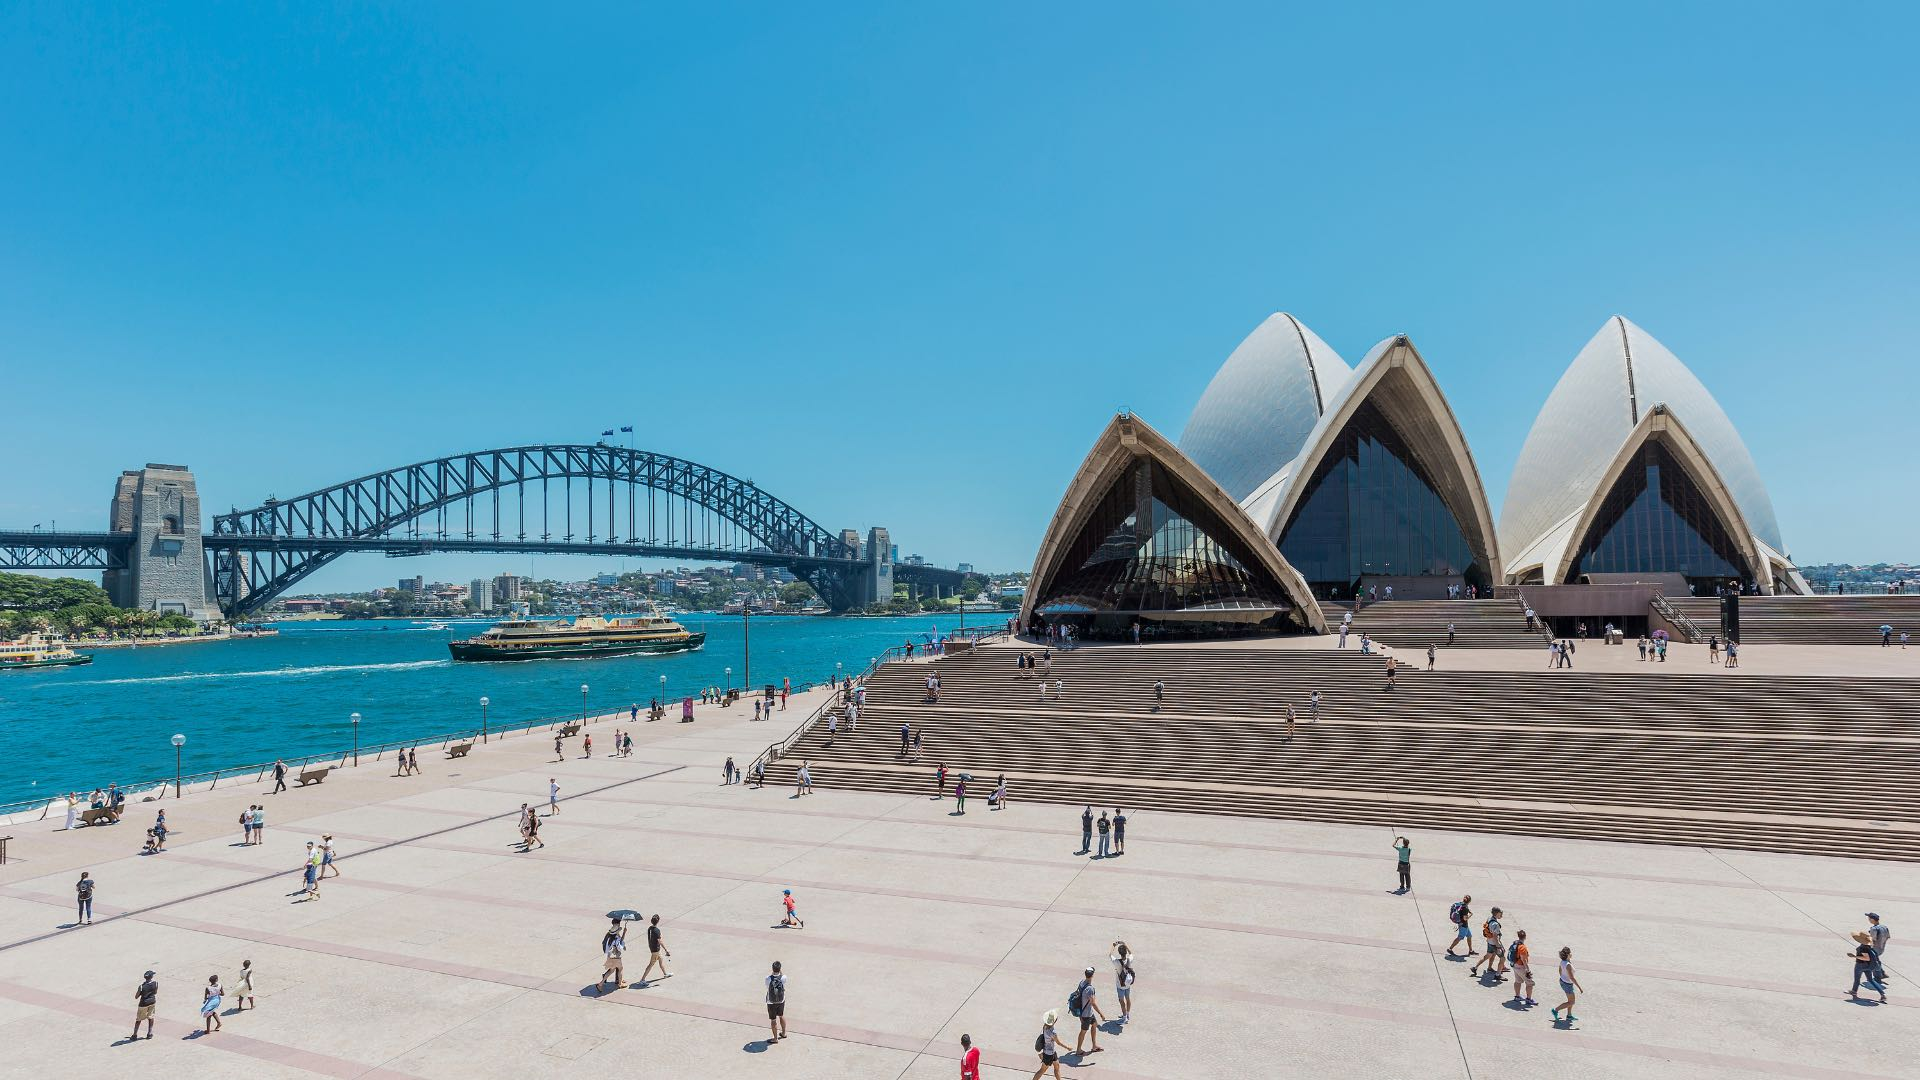 SYDNEY OPERA HOUSE - Limited Edition